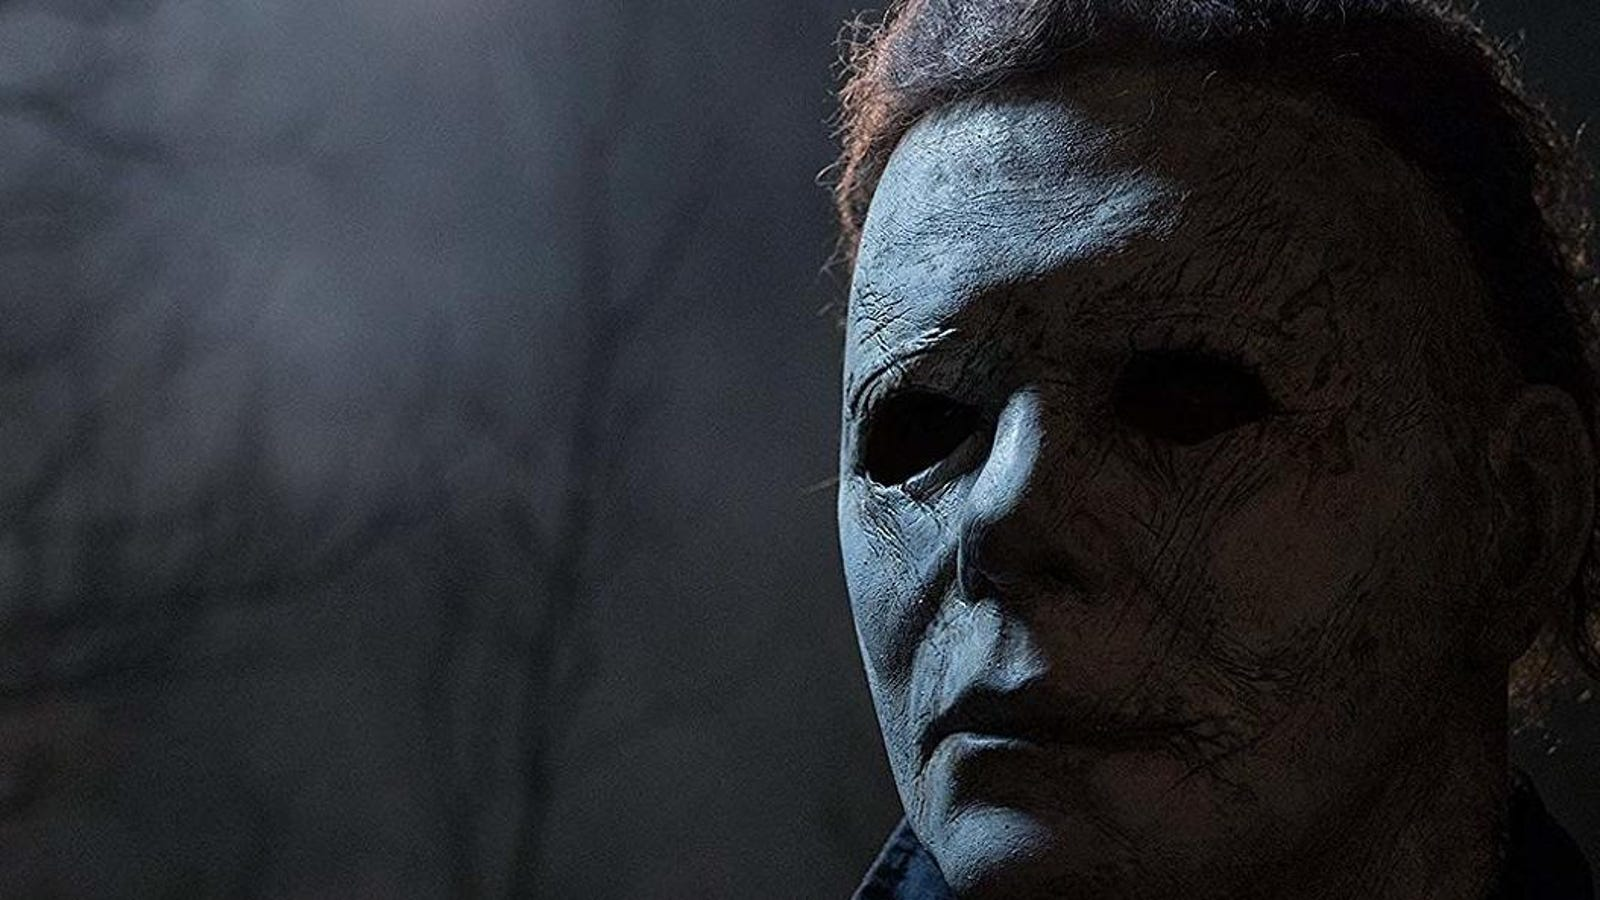 This Deleted Scene From Halloween Makes Michael Myers Even More of a Monster